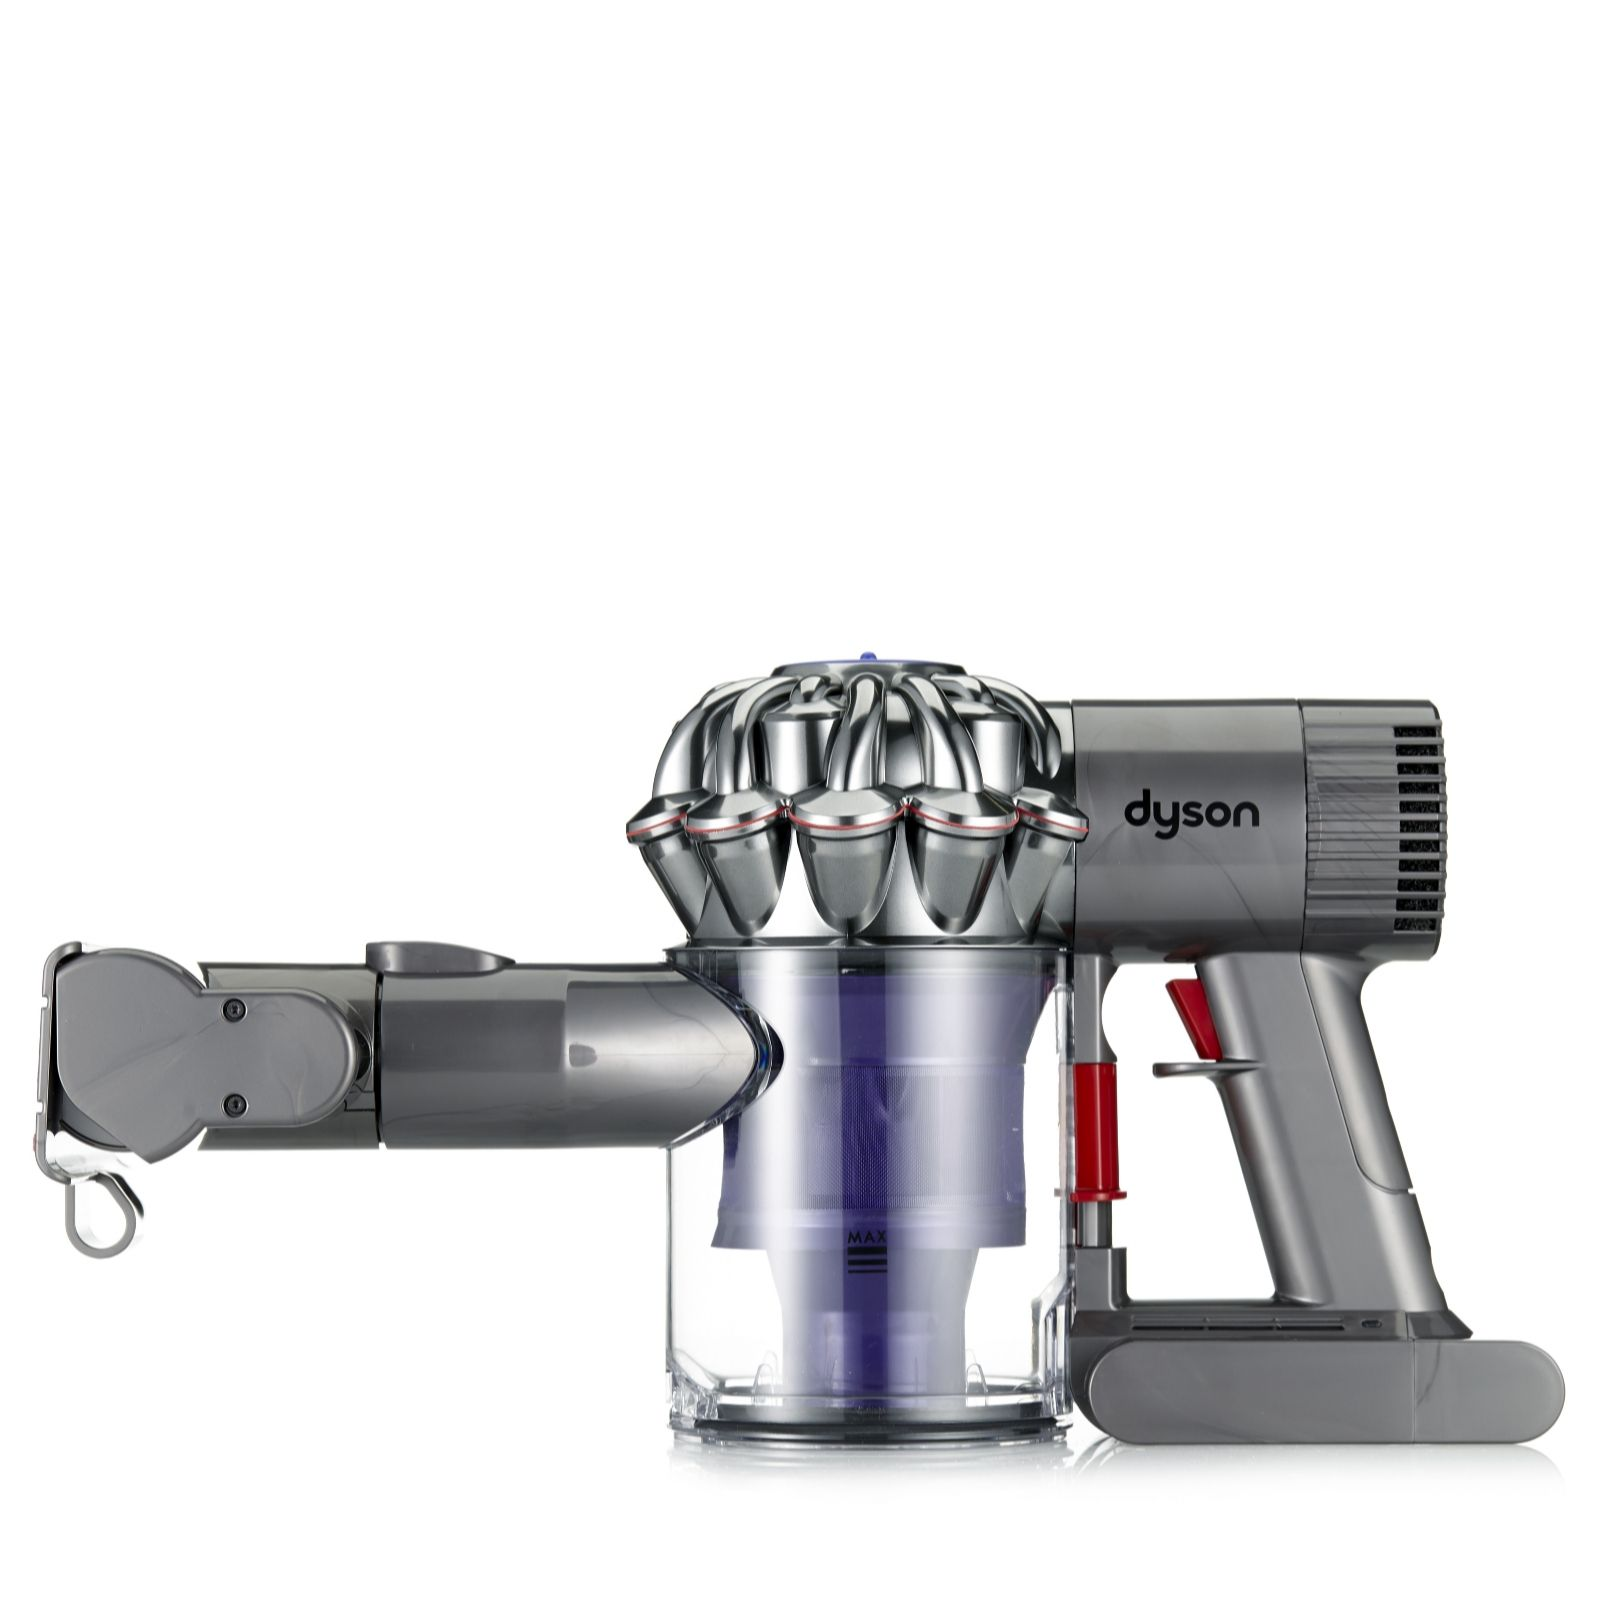 Dyson DC58 Cordless Handheld Vacuum Cleaner